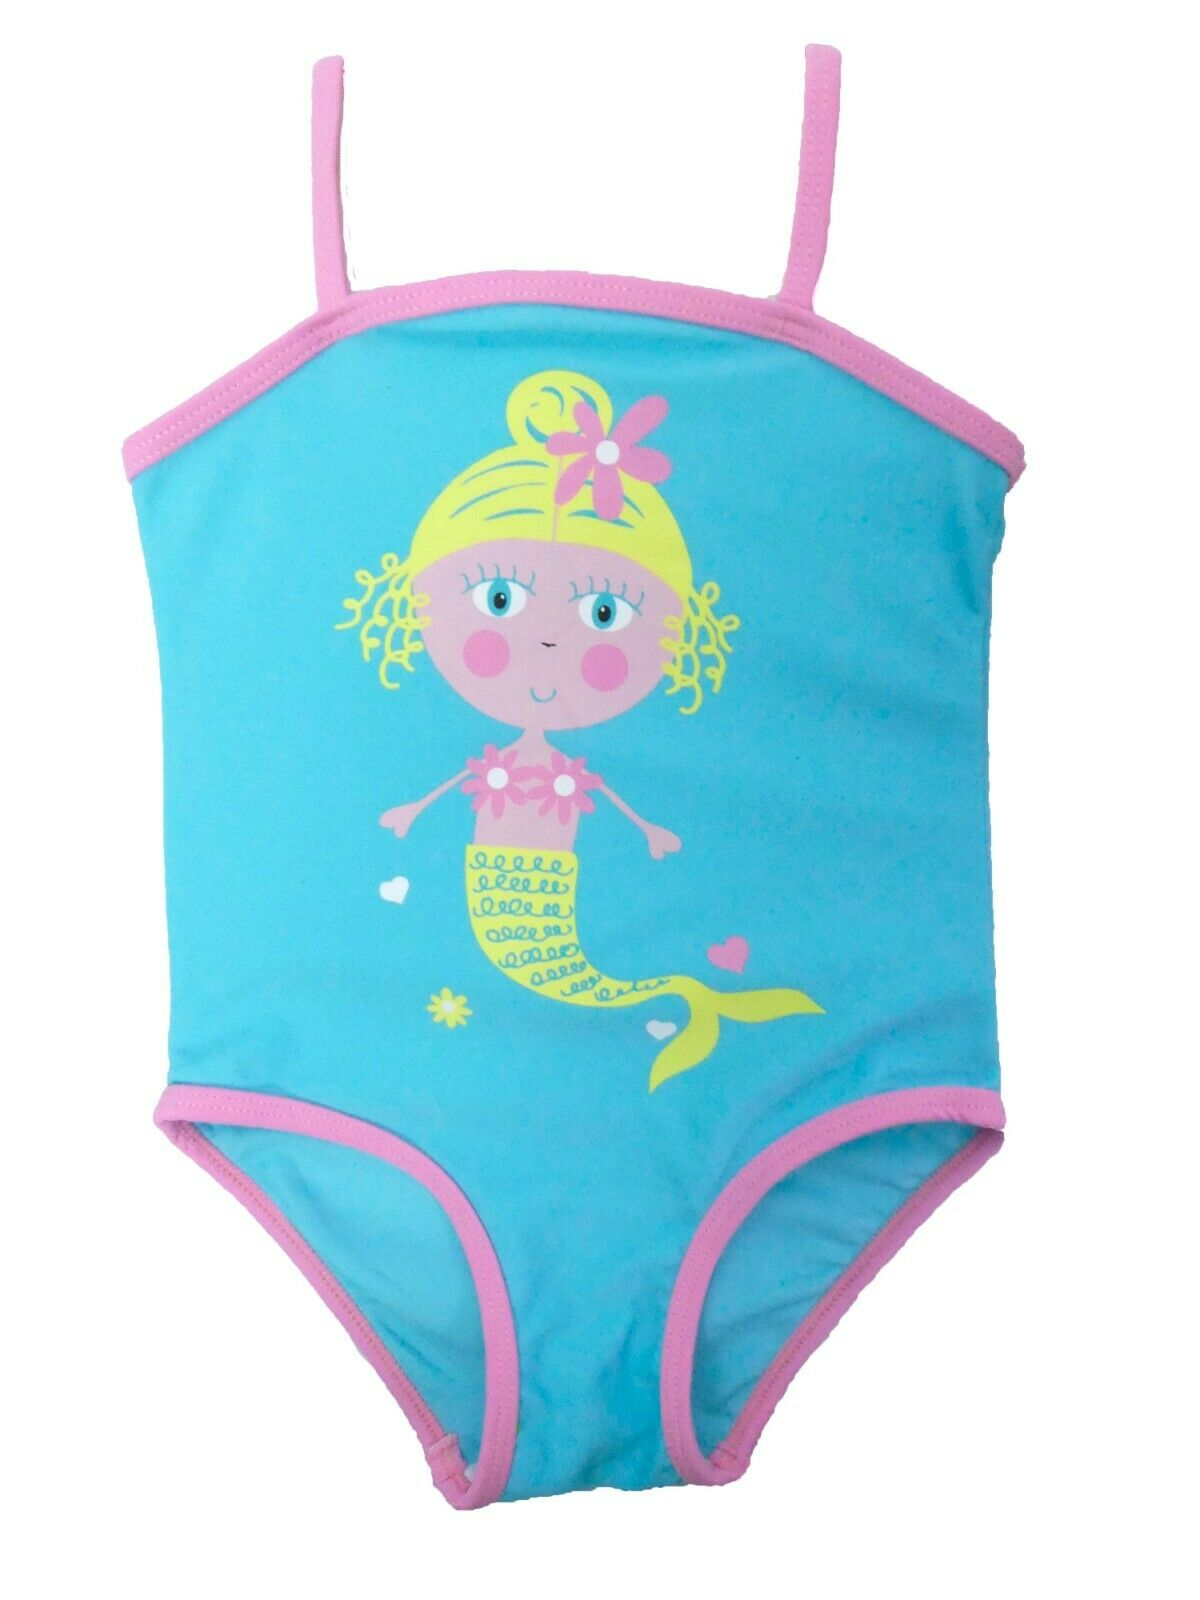 Girls Character All in One Surf Suit Good Coverage from UV Rays 1.5y to 2-3y